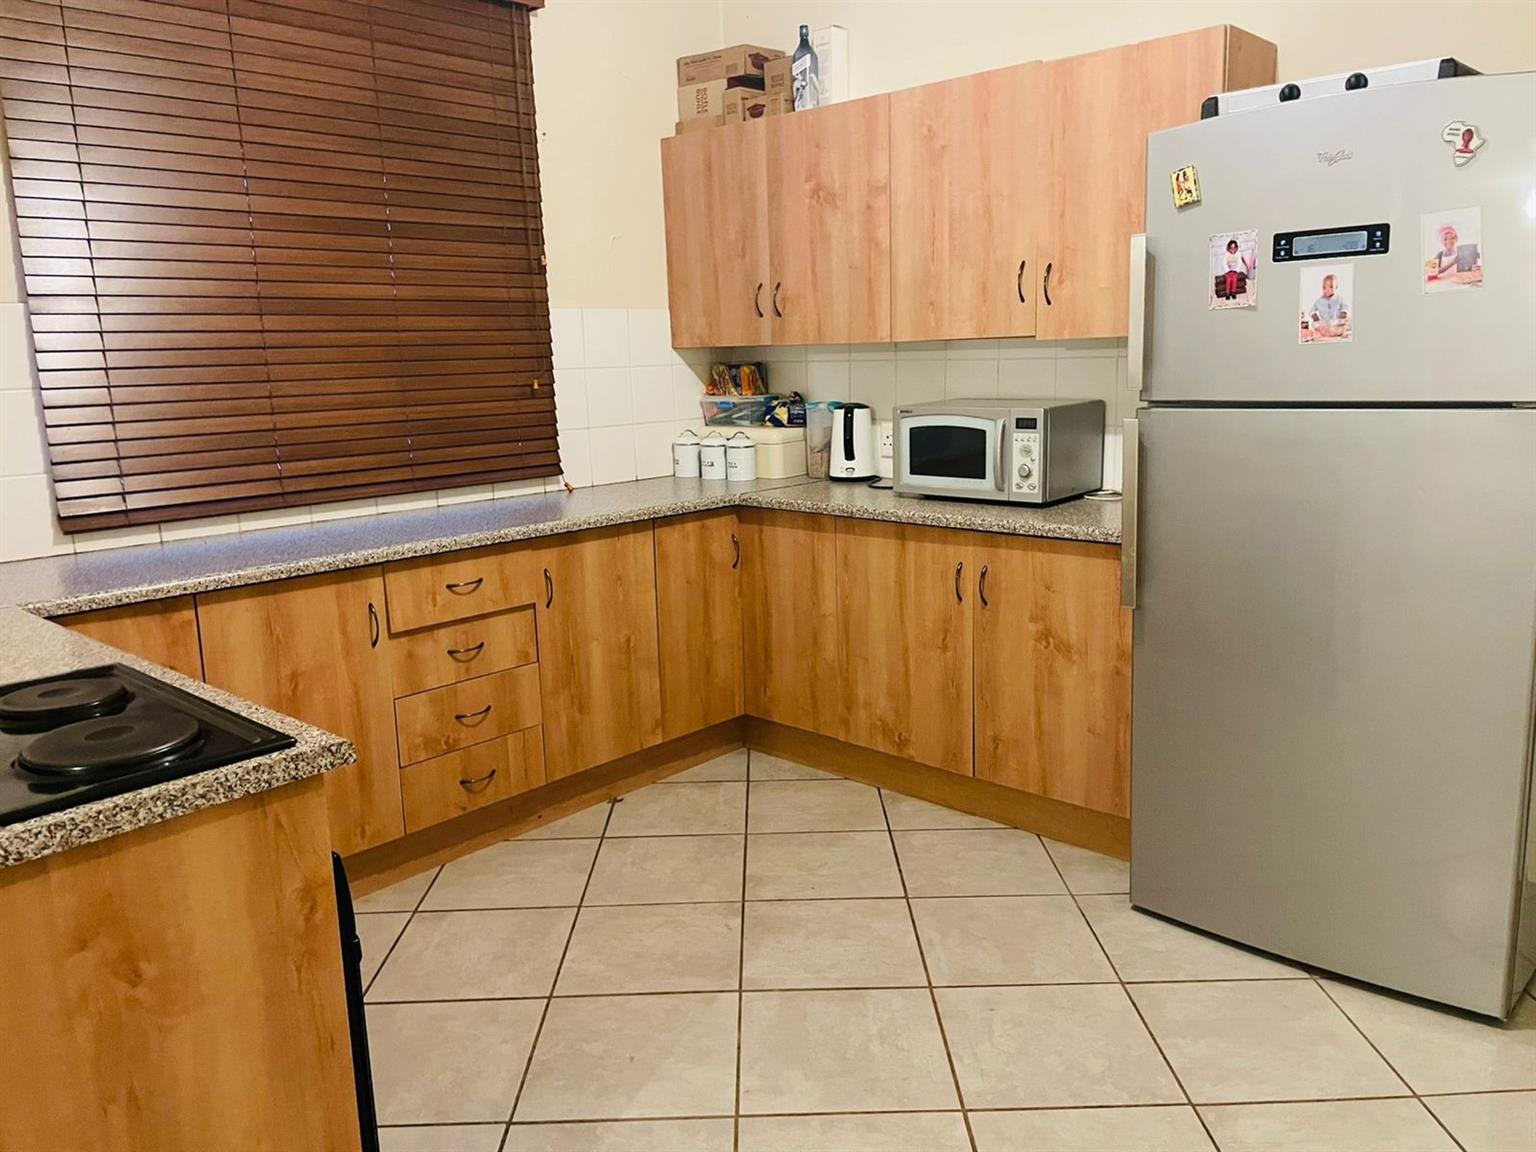 House For Sale in Danville